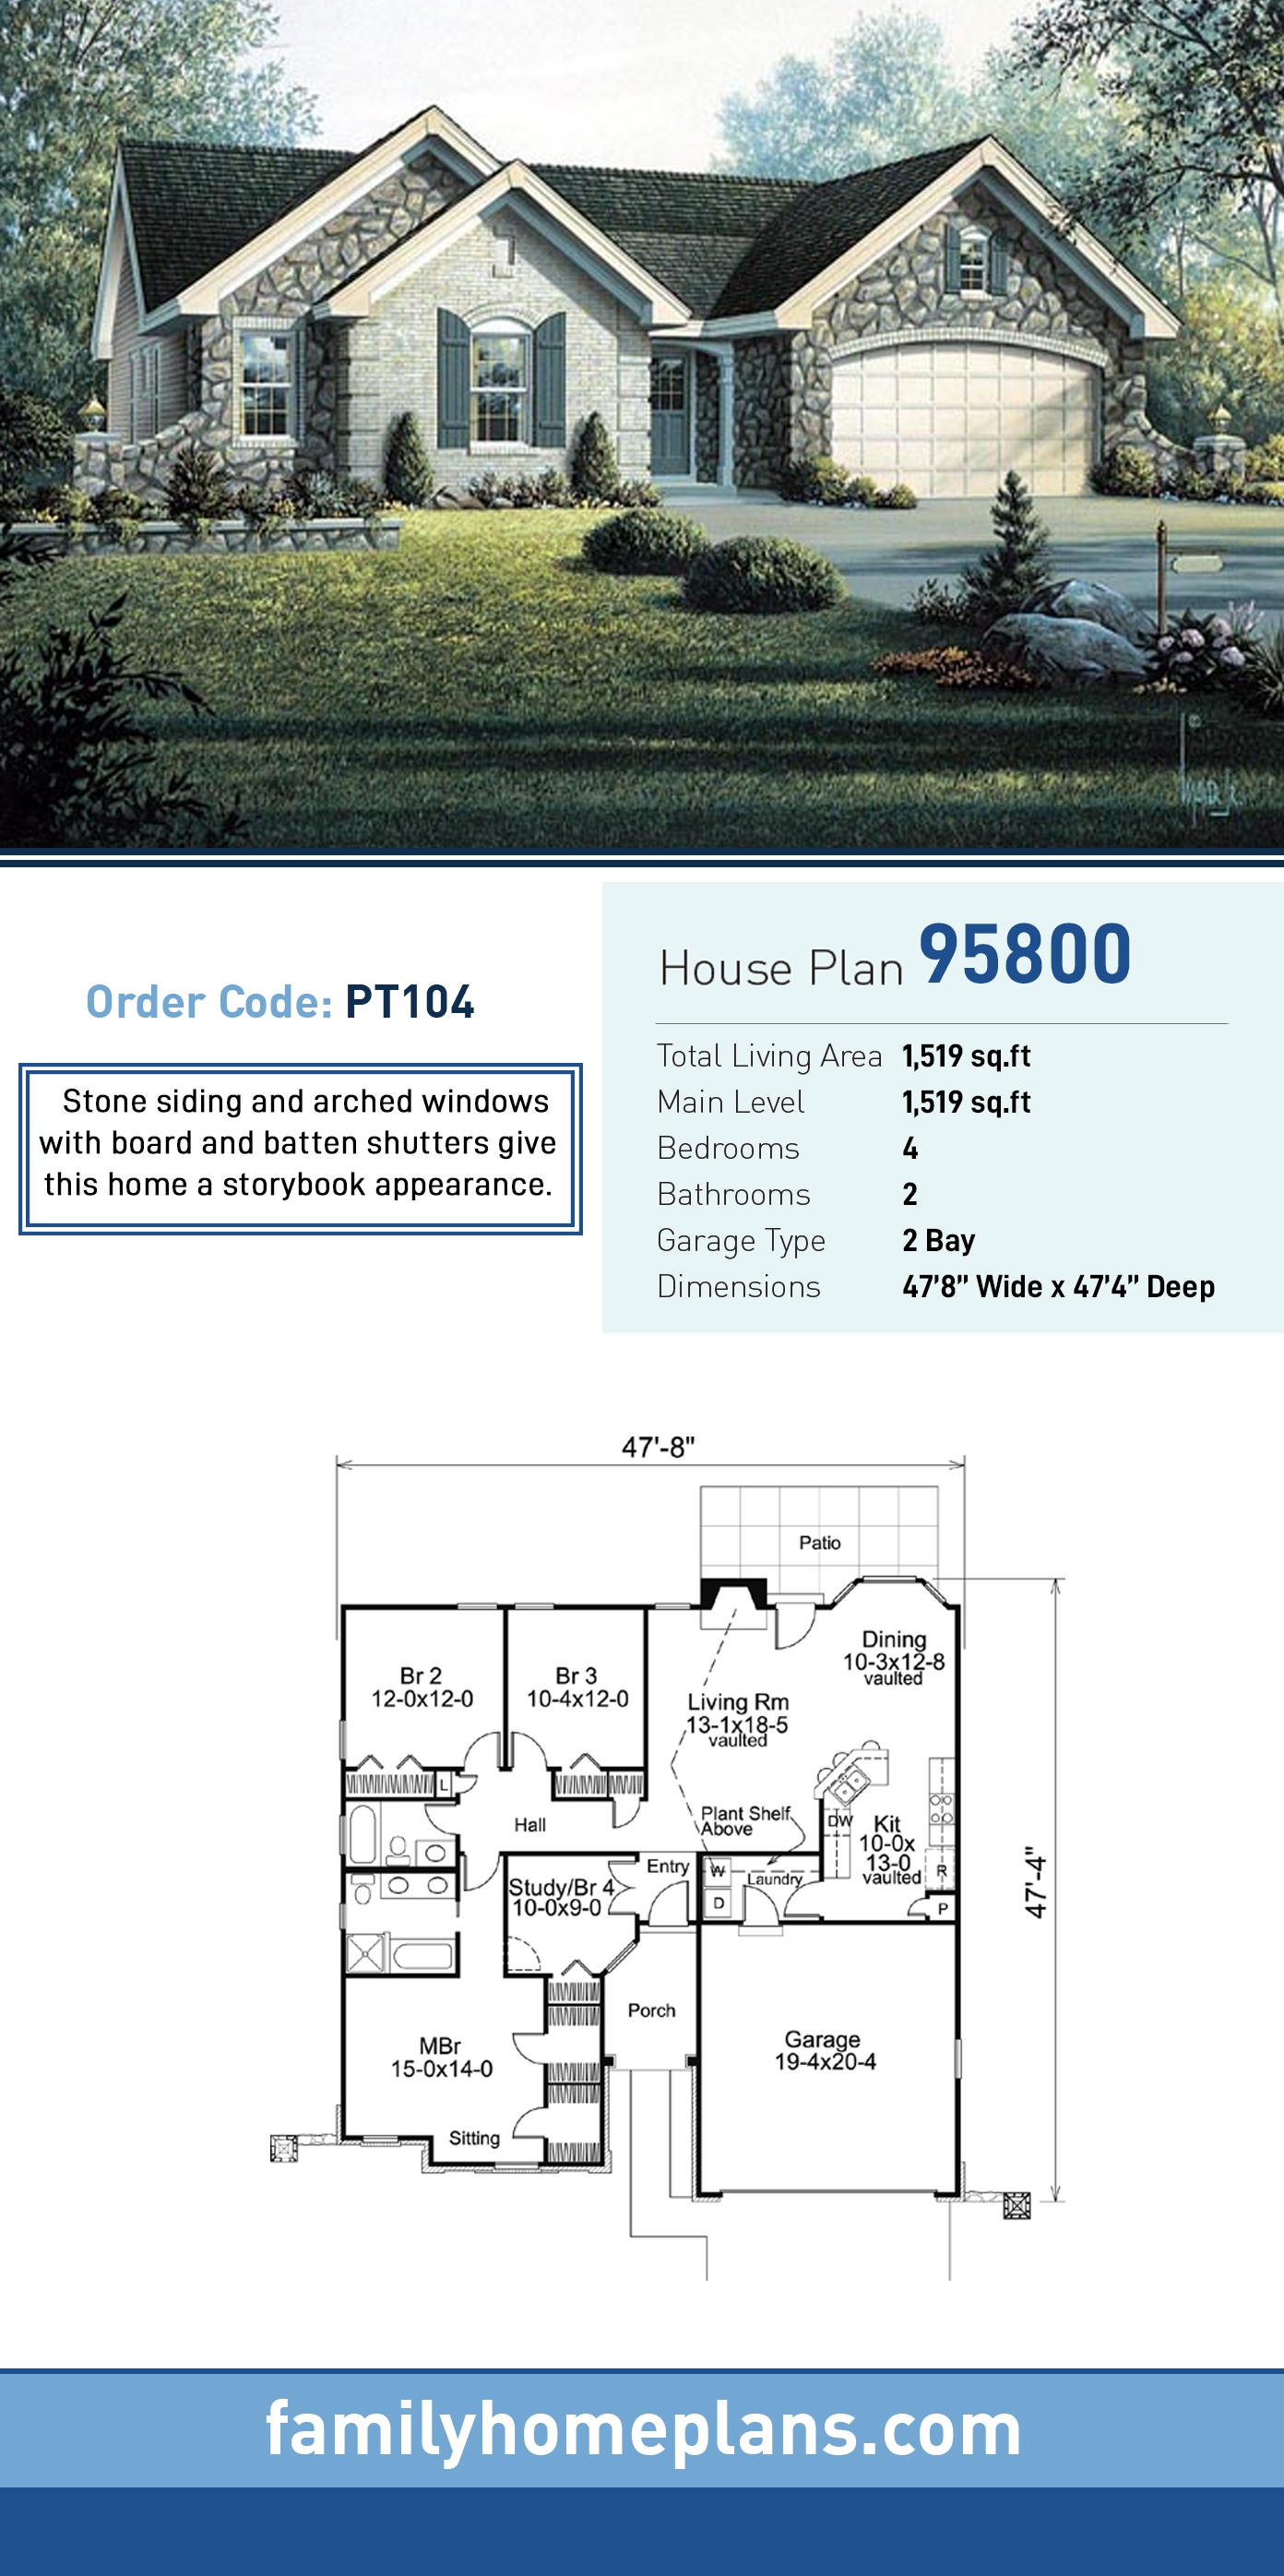 Cottage, Country, Craftsman, Ranch House Plan 95800 with 4 Beds, 2 Baths, 2 Car Garage